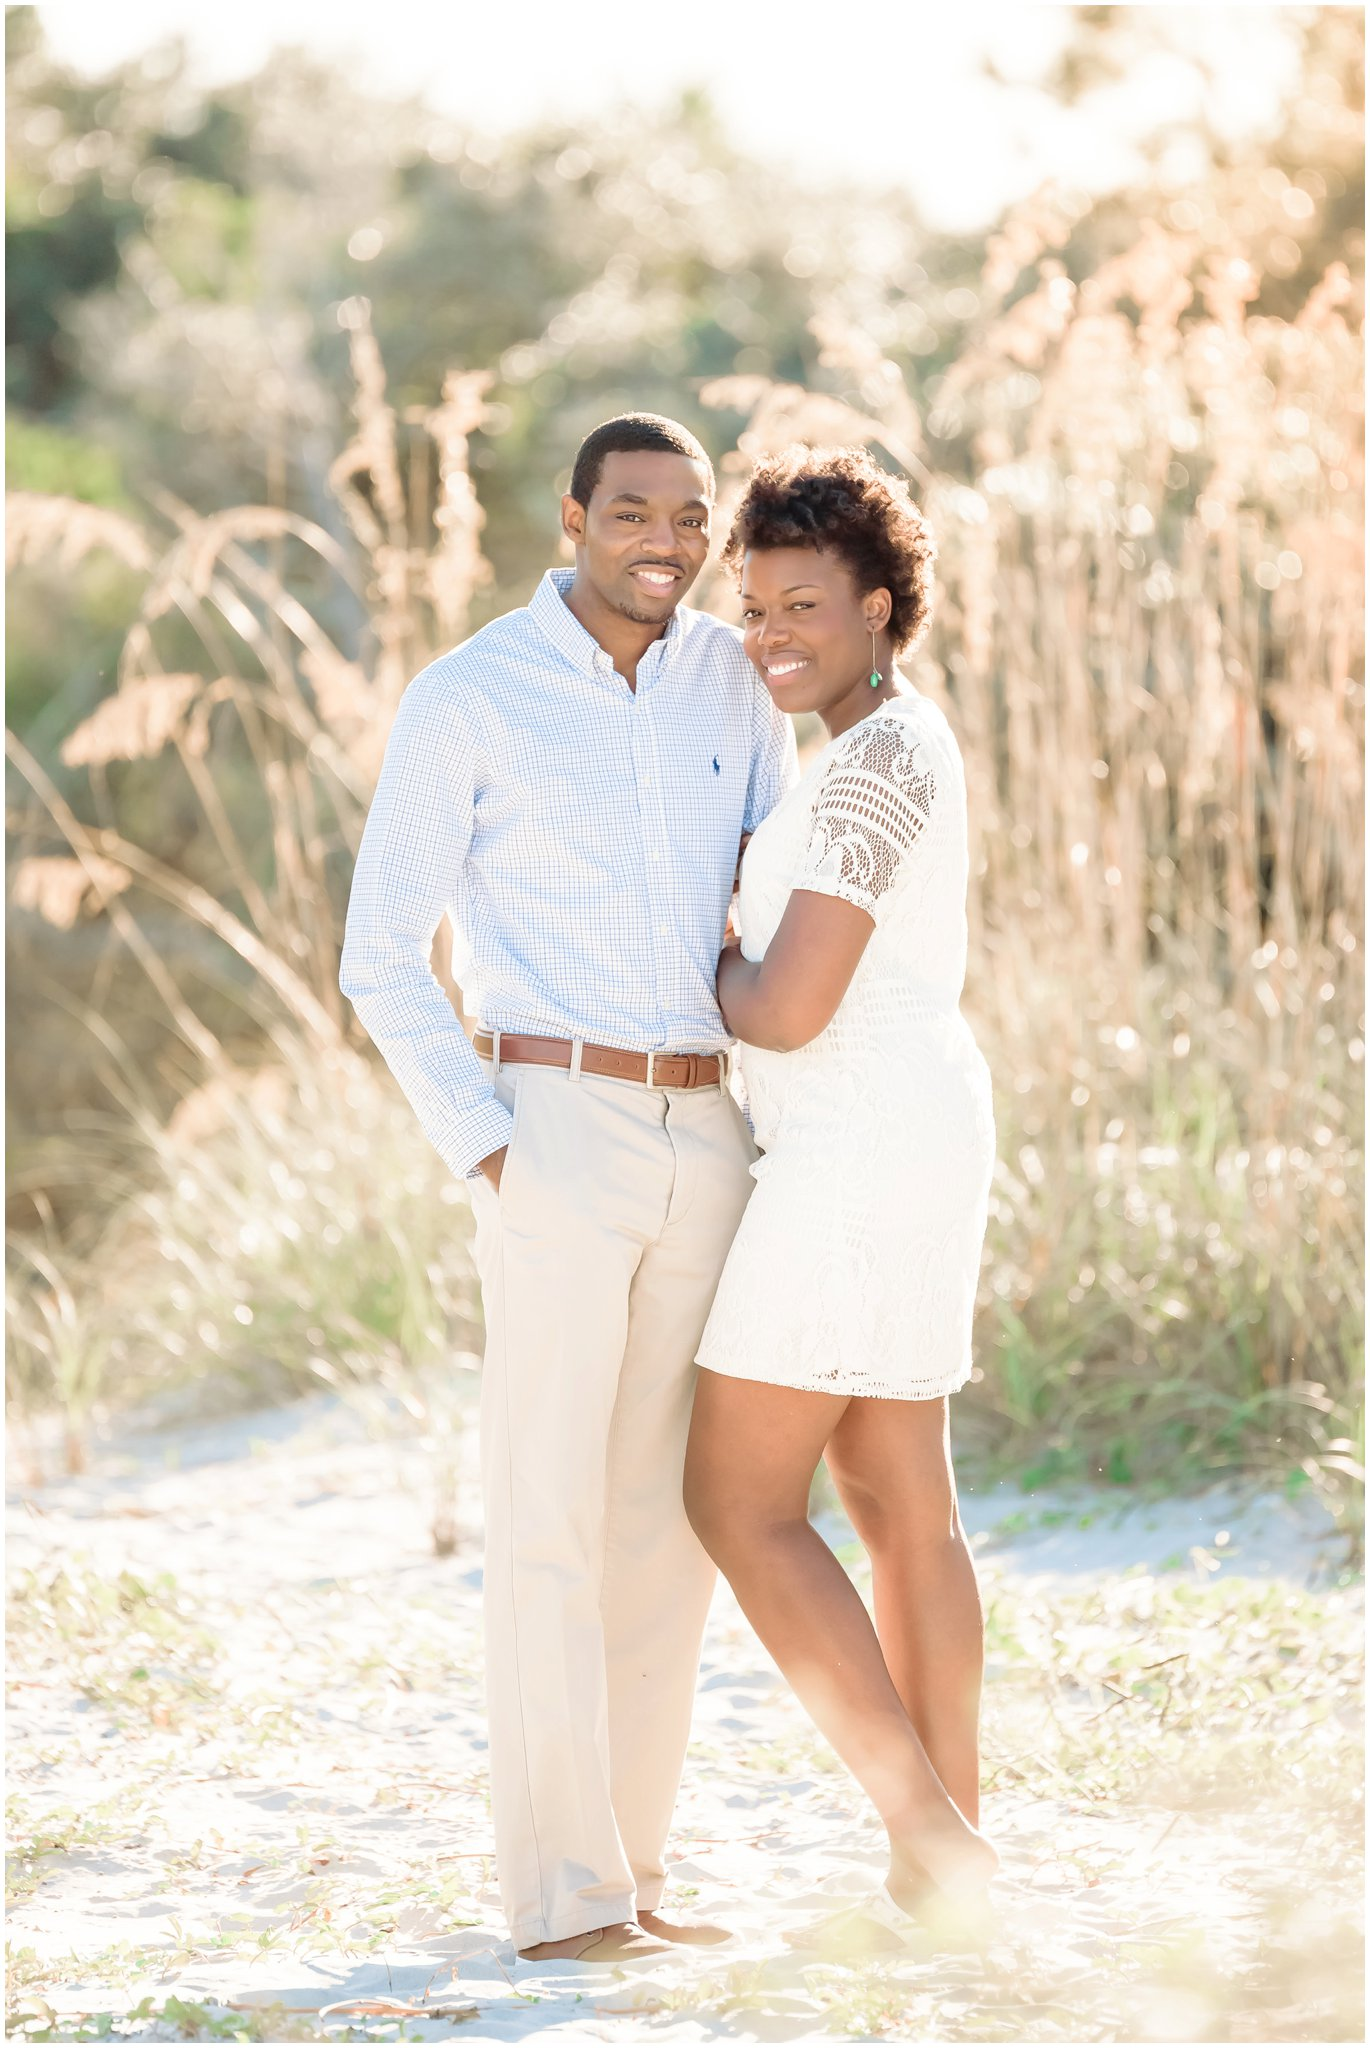 Folly Beach Engagement Photography_Charleston SC Wedding Photographer_Stephanie Kopf Photography.jpg_0001.jpg